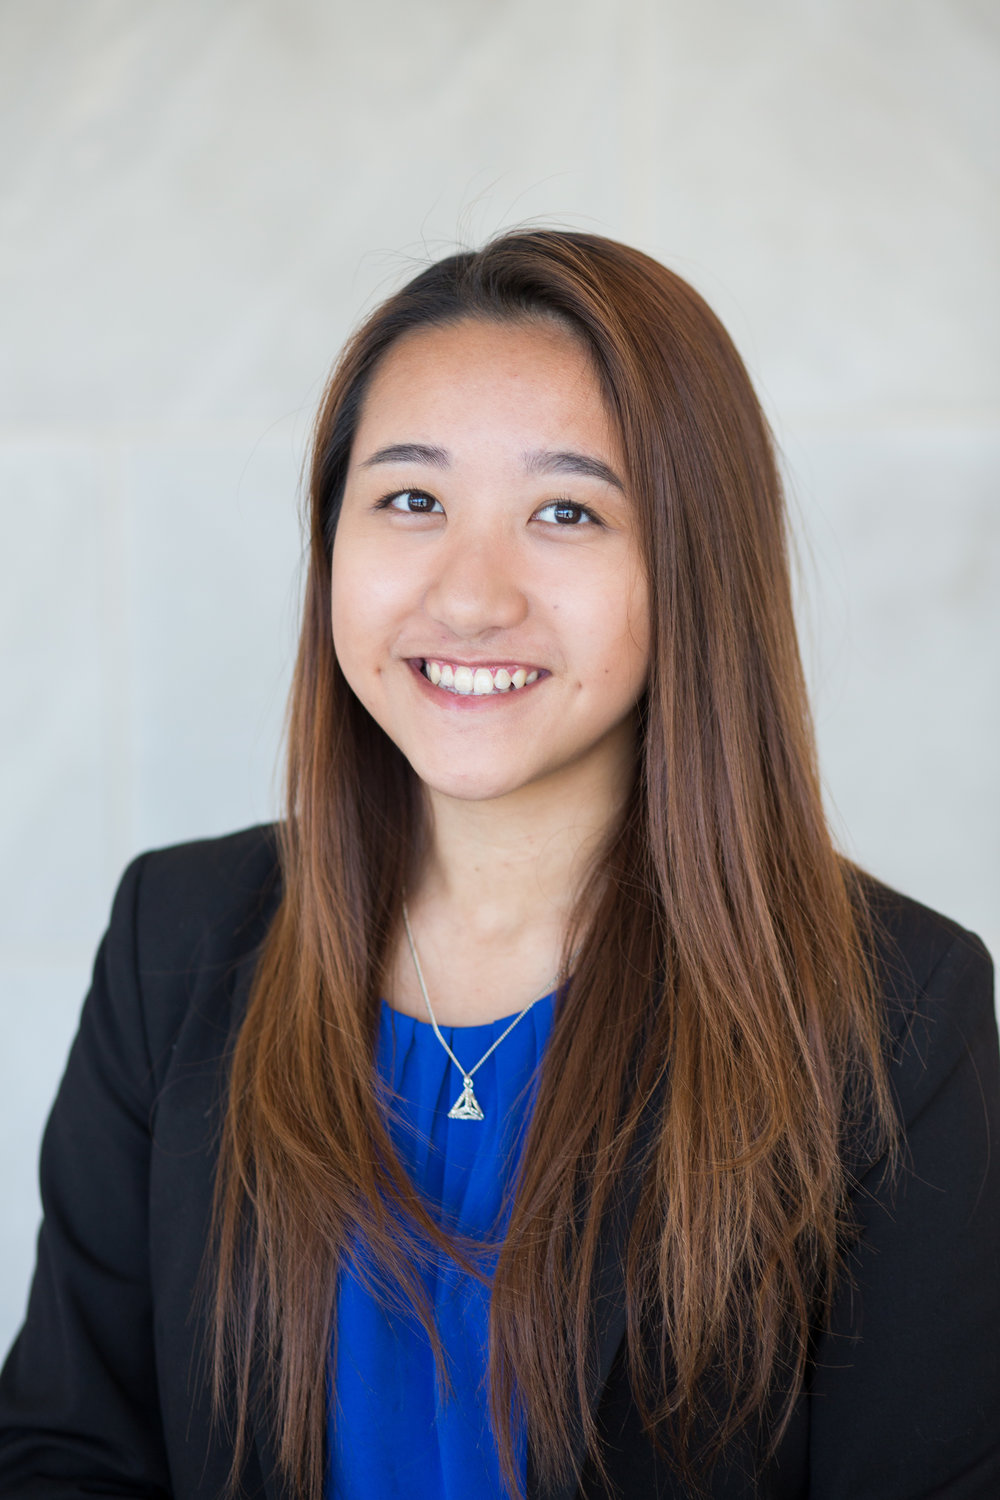 Areas of Study: Hotel Administration, Concentrating in Finance, Accounting, and Real Estate   Professional Experience(s): Investment Summer Analyst at Park Hotels & Resorts,KPMG LLP, Primerica Financial Services   Club Involvement(s): Cornell Hedge Fund, Social Business Consulting, AHLA, TA, Ye Host Honor Society